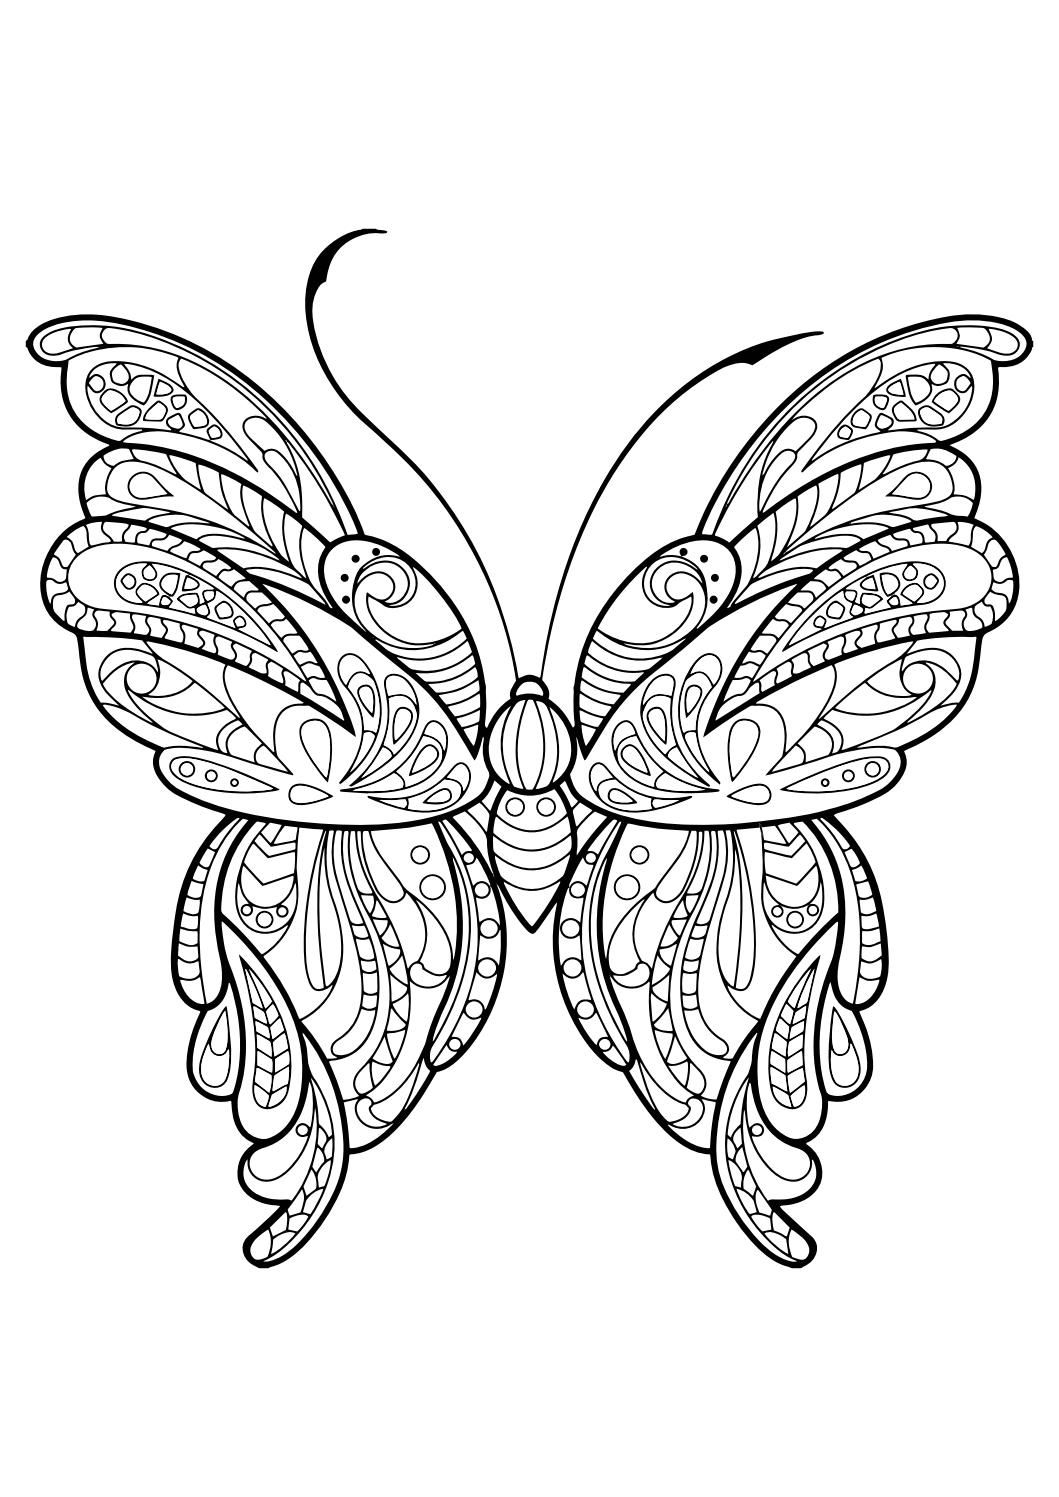 1059x1497 New Easy Butterfly Adult Coloring Pages Design Printable